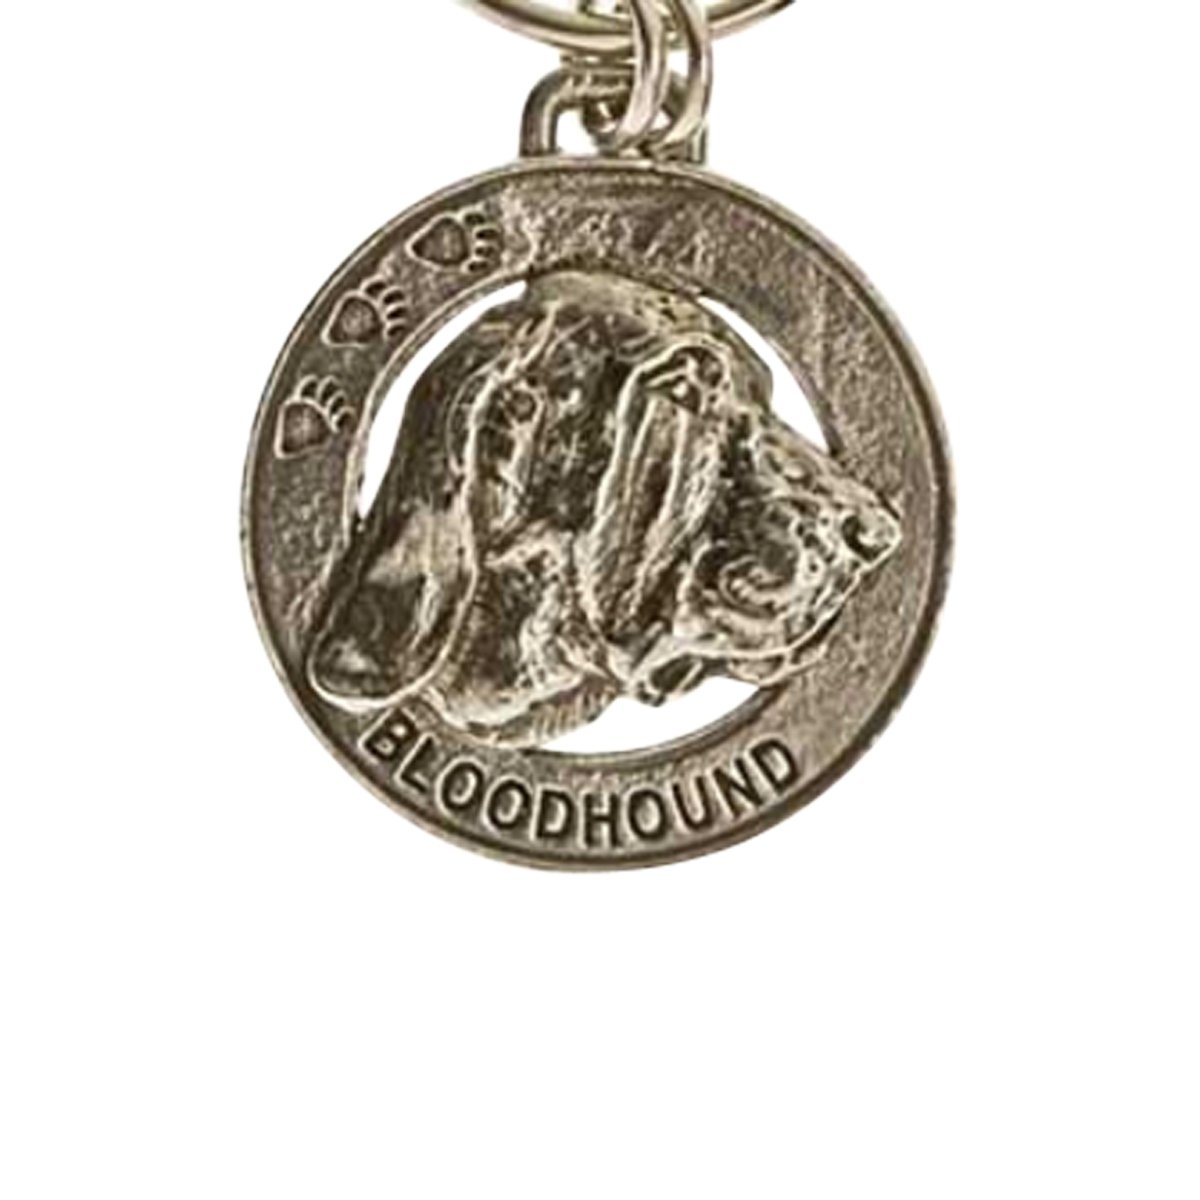 Creative Pewter Designs, Pewter Bloodhound Key Chain, Antiqued Finish, DK028